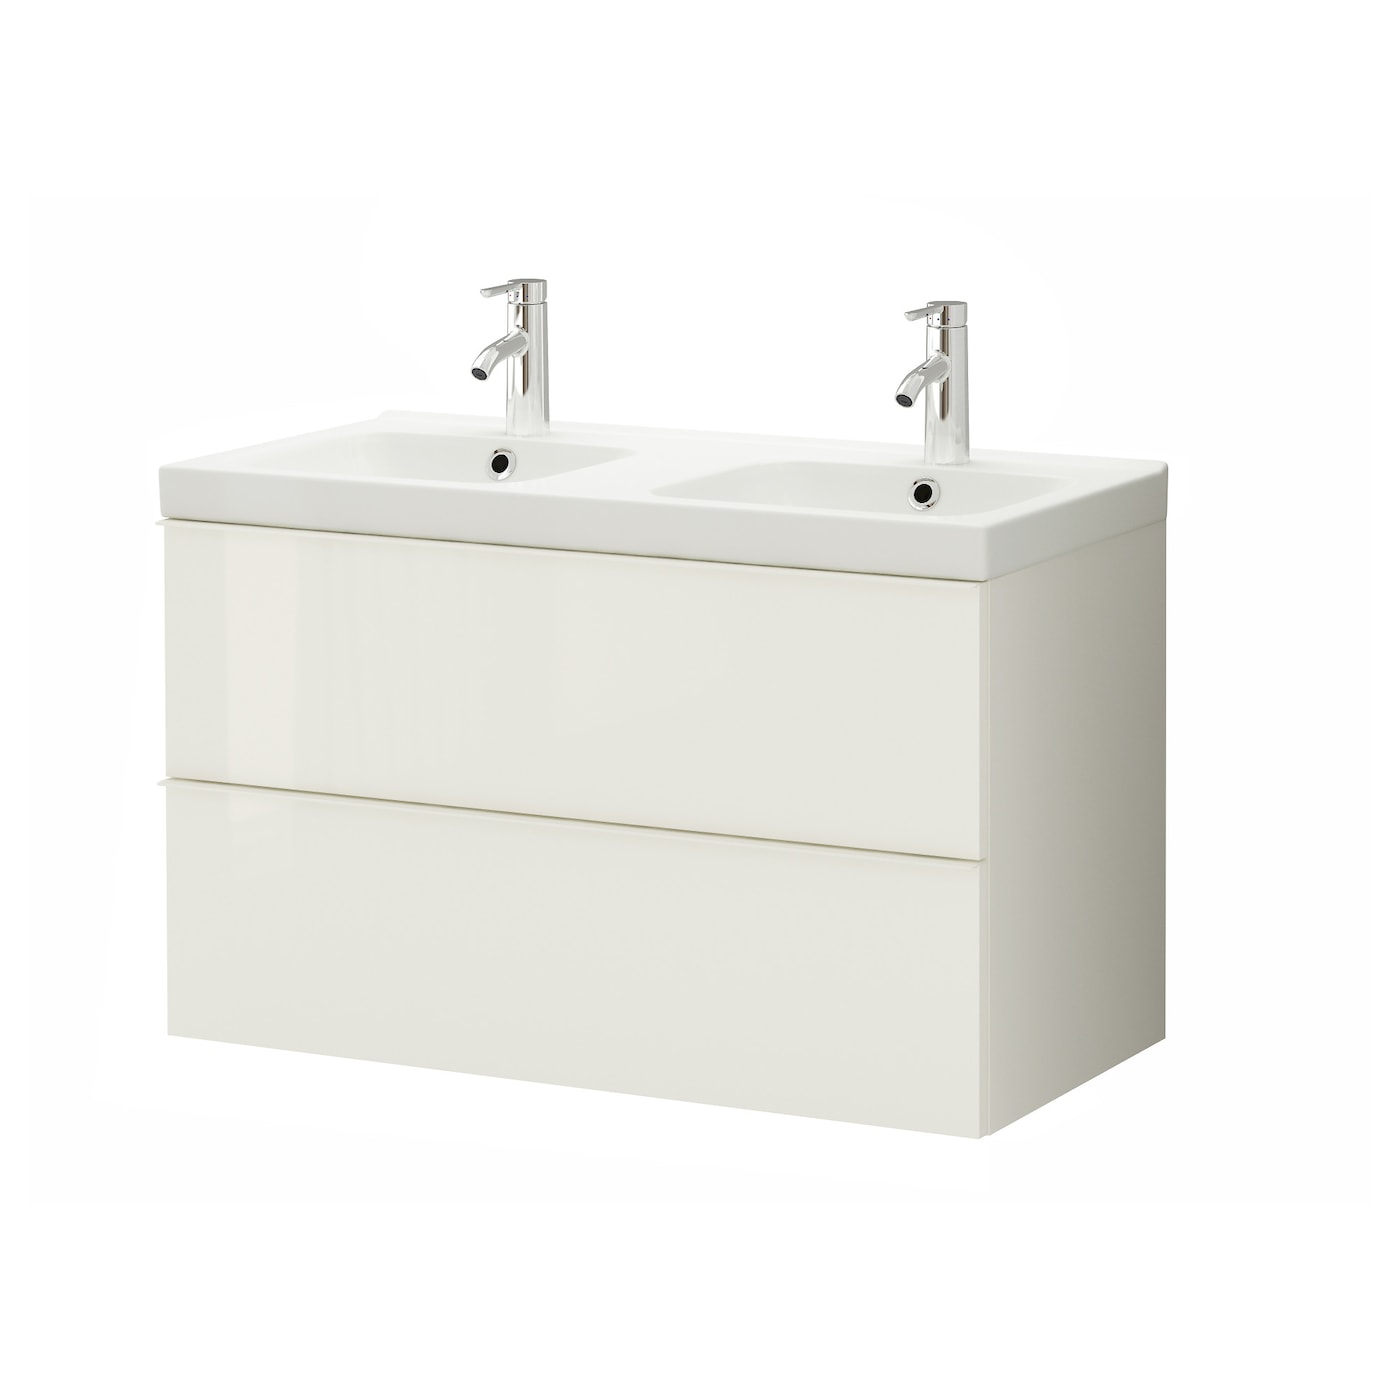 White gloss bathroom unit - Ikea Odensvik Godmorgon Wash Stand With 2 Drawers